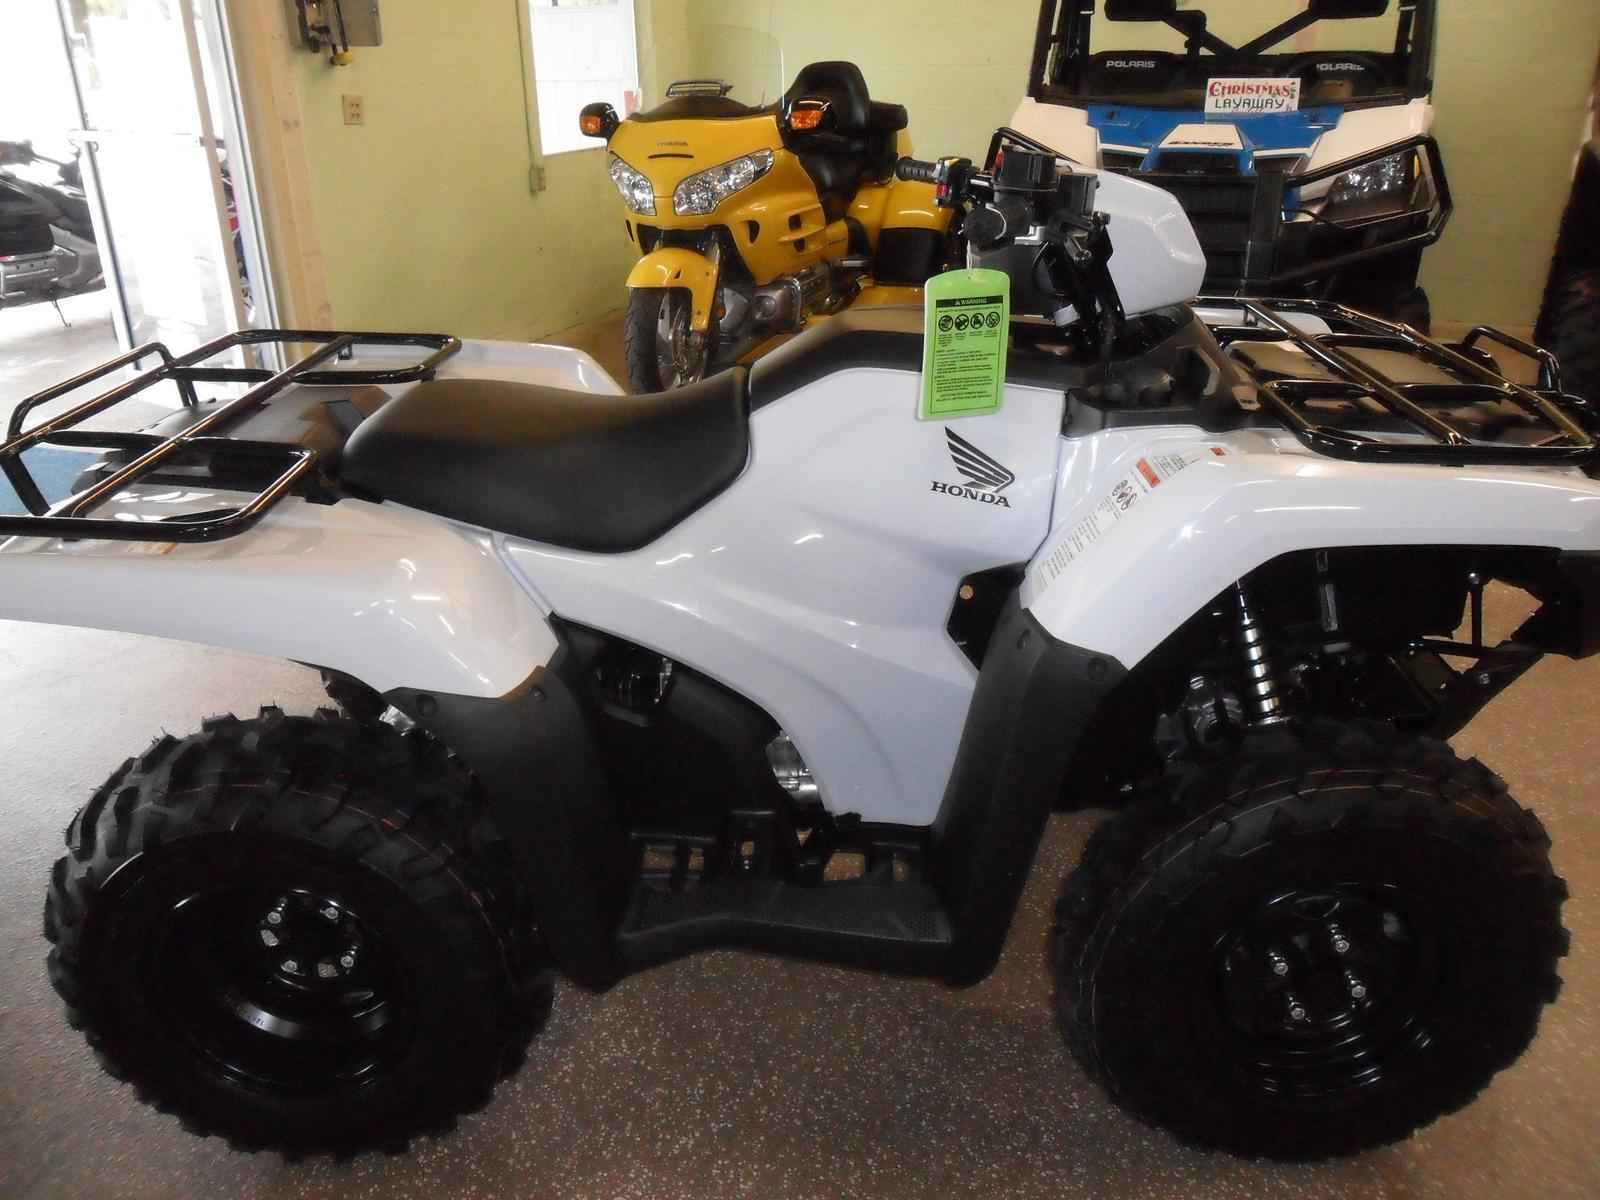 New 2017 Honda Foreman 500 Fm Atvs For Sale In Florida On Atv Trades